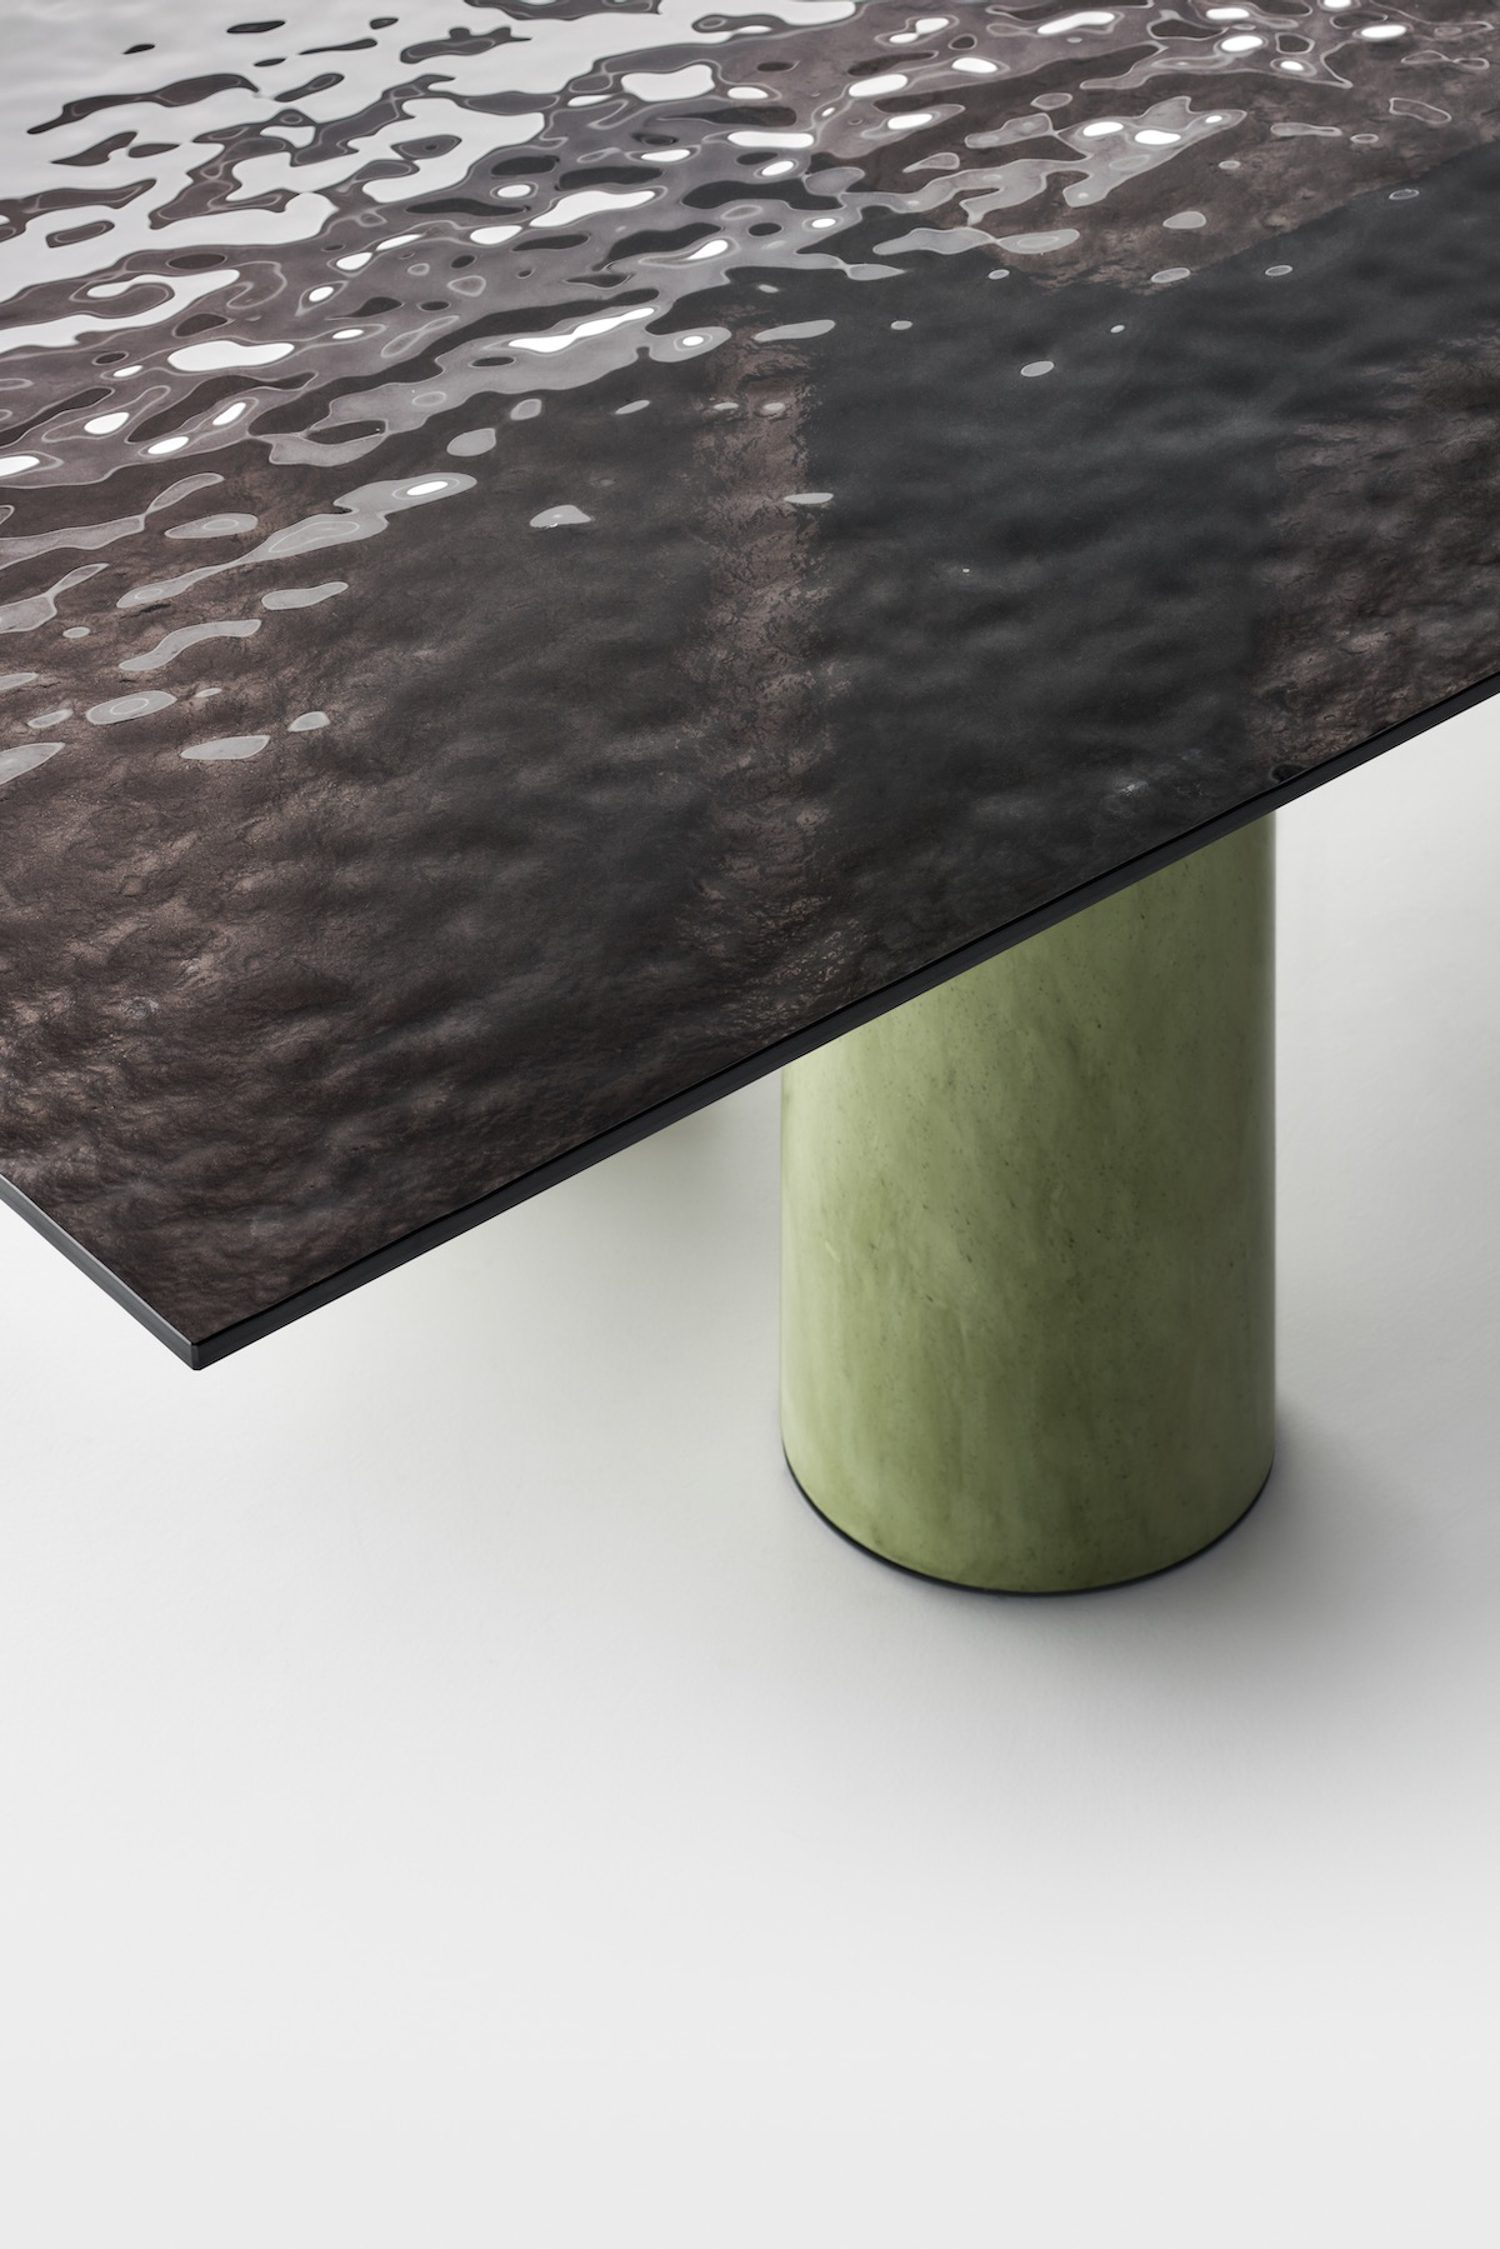 Close up detail of the glass top and green table leg.